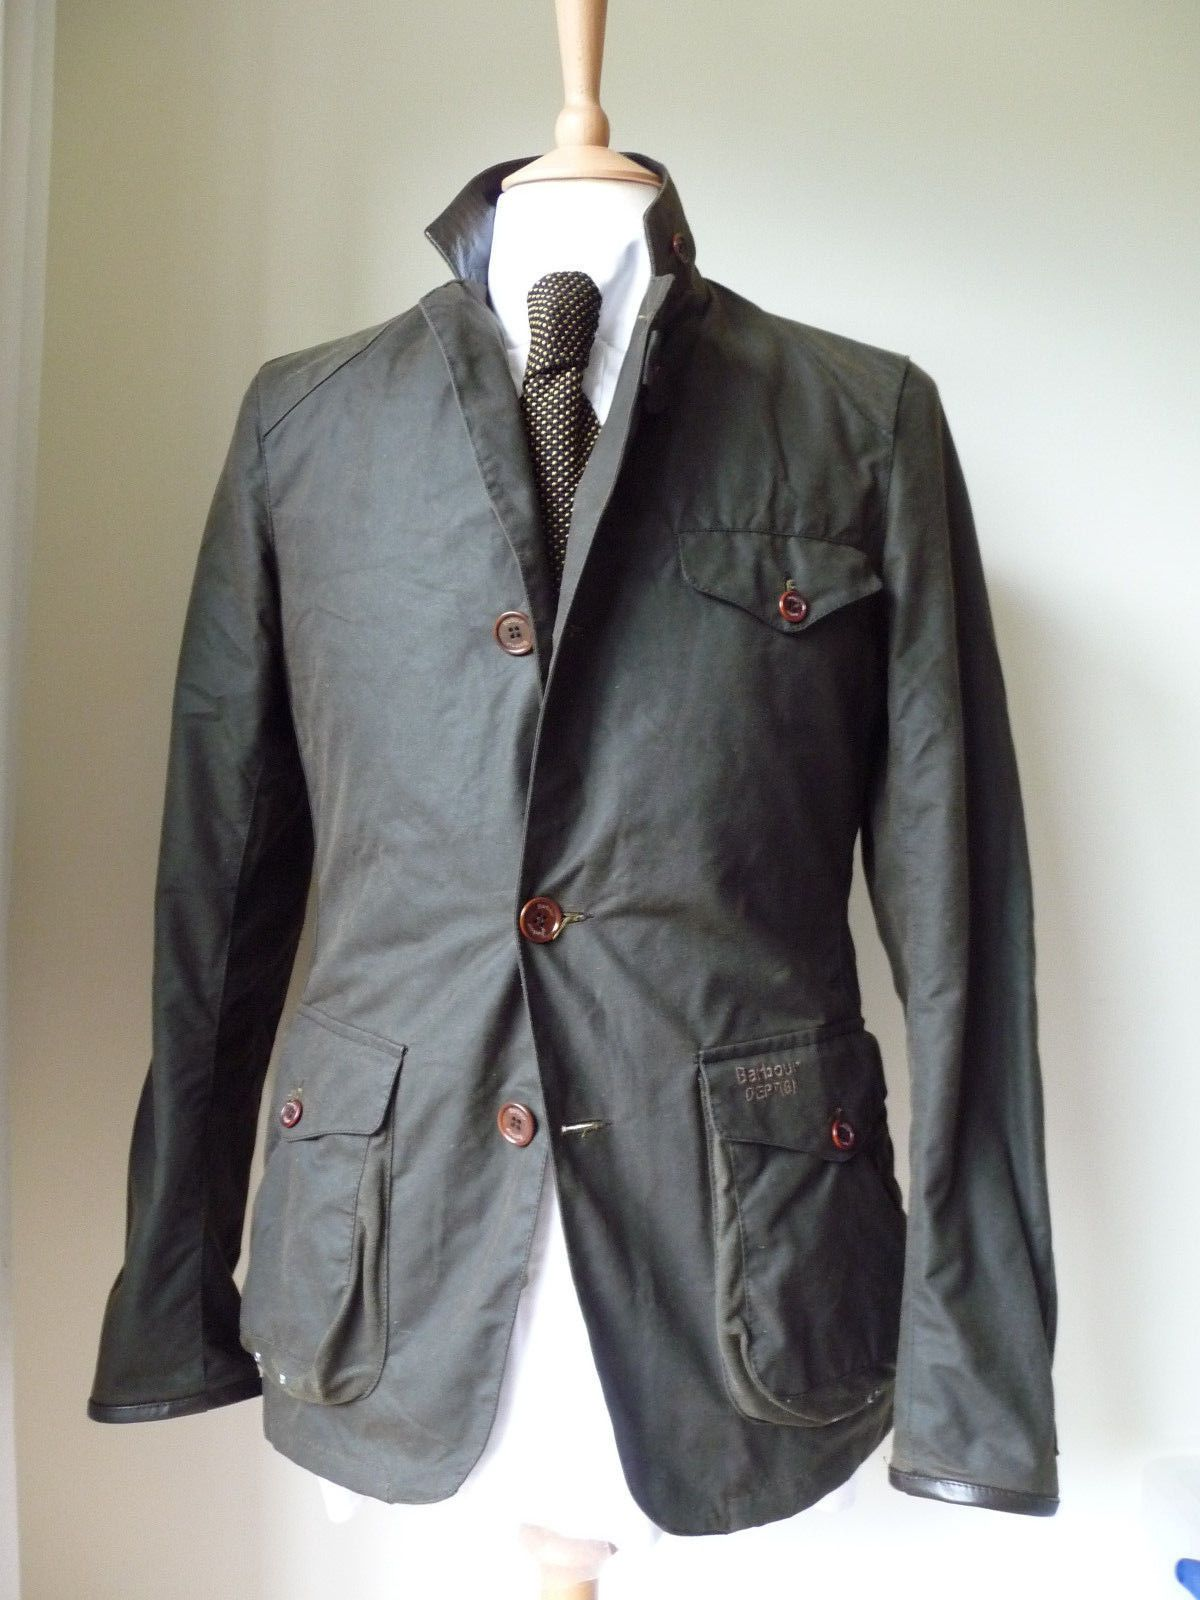 6728133df5407 Barbour Commander Jacket as seen on James Bond in Skyfall in Clothes